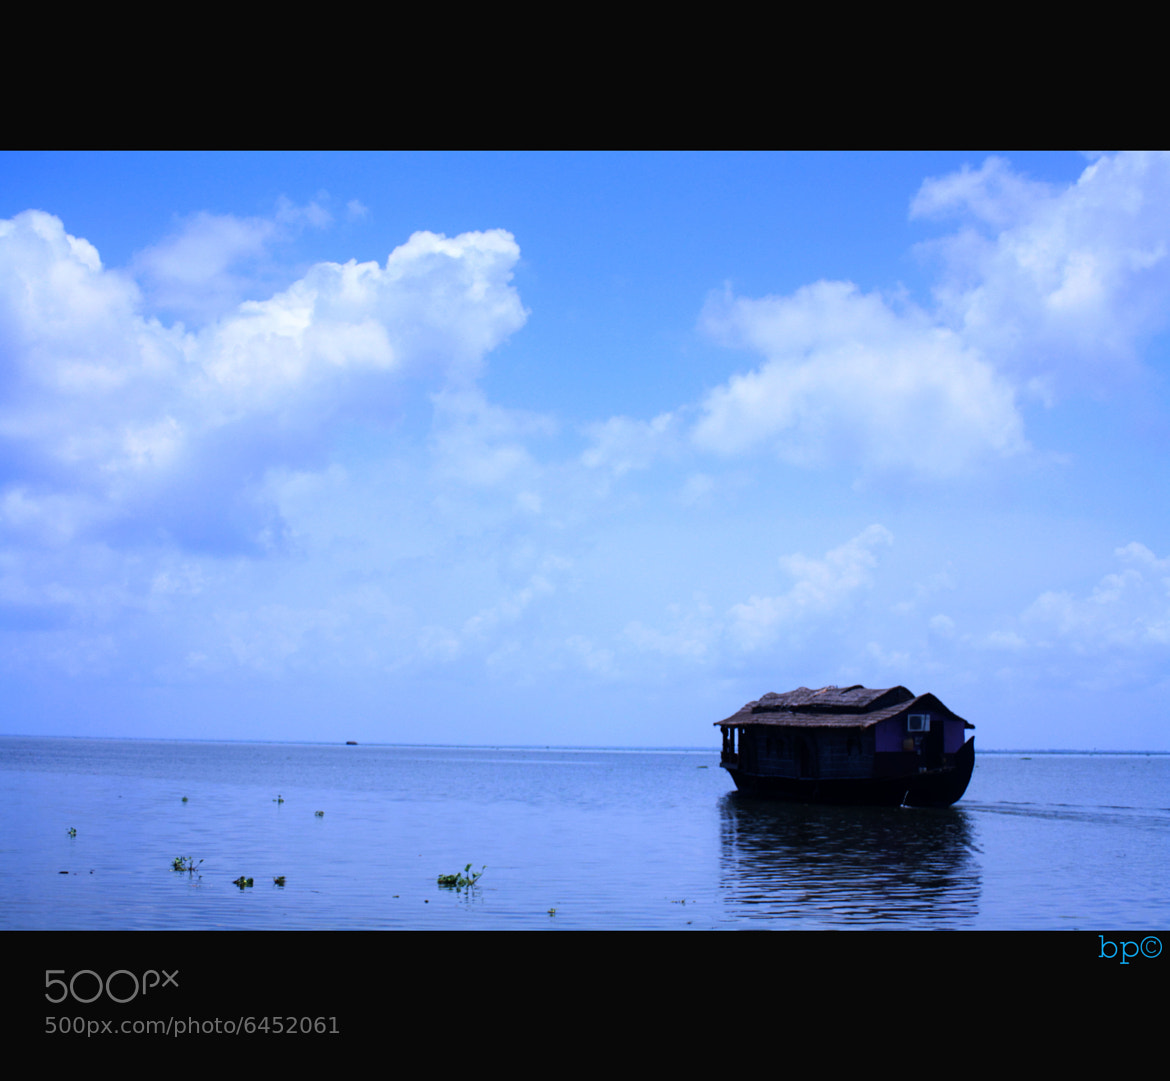 Photograph Blue Side of Lonesome by Bipin Nambiar on 500px